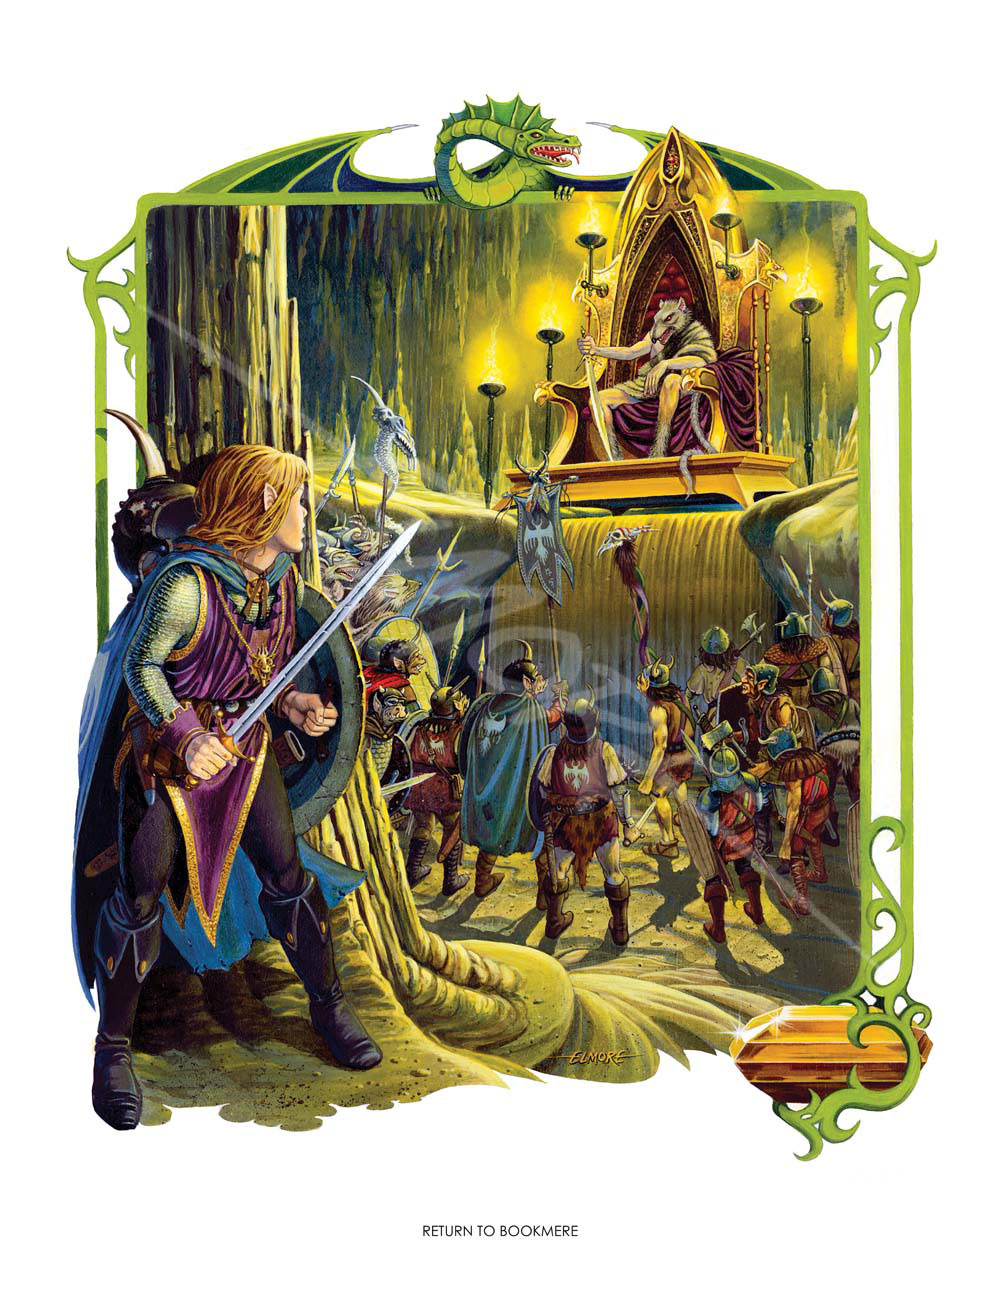 http://www.larryelmore.com/core/imgs/prints/DND-ENDLESSQUEST-RETURN-TO-BROOKMERE.jpg